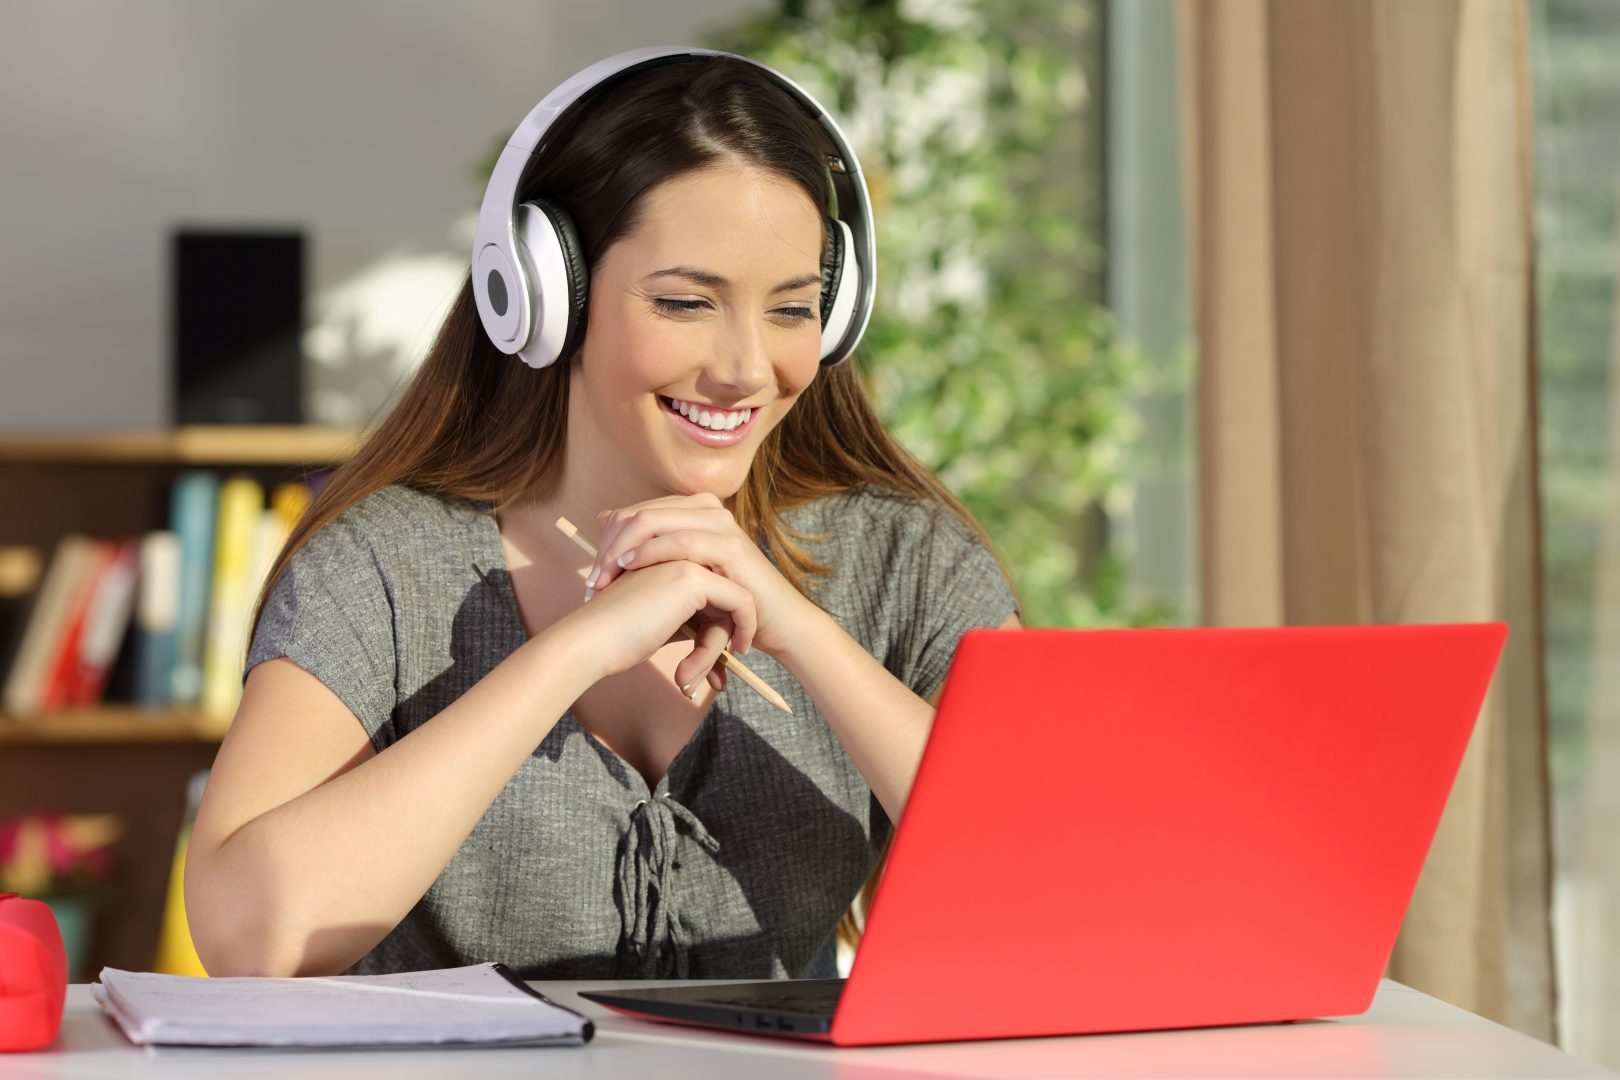 smiling girl remote learning wearing headphones at home